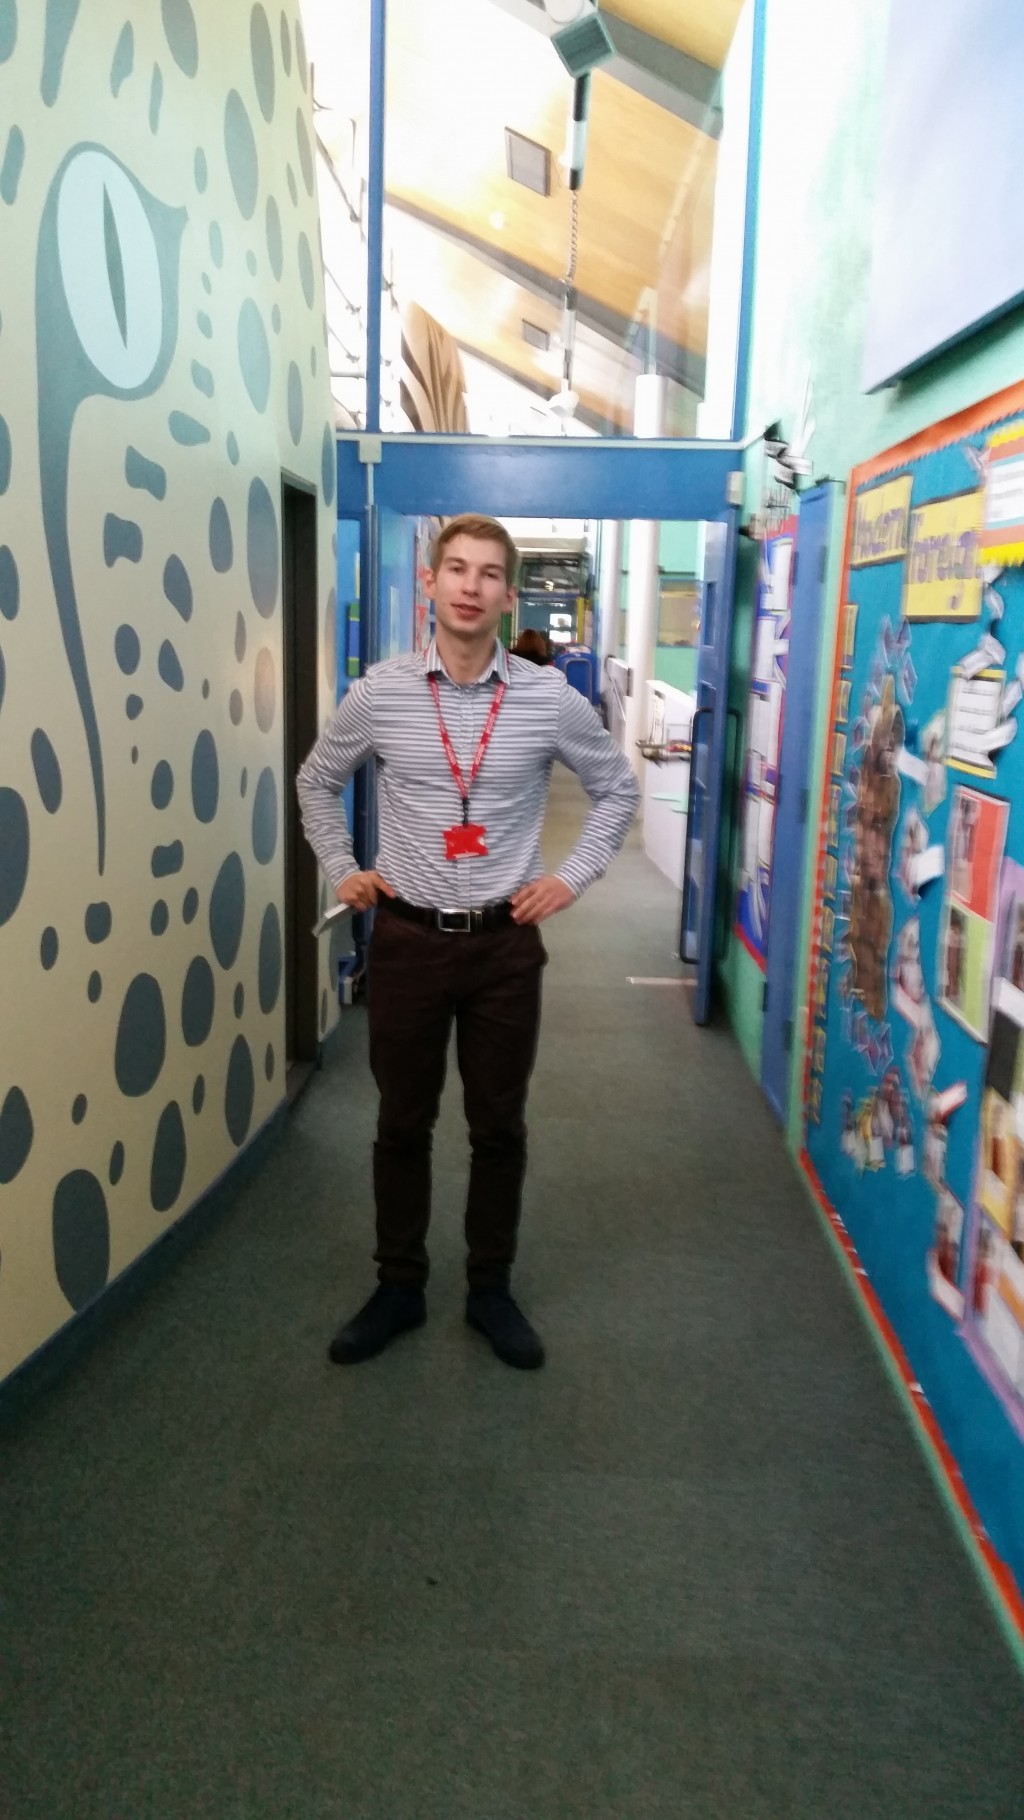 Job shadowing at Pokesdown Community Primary School